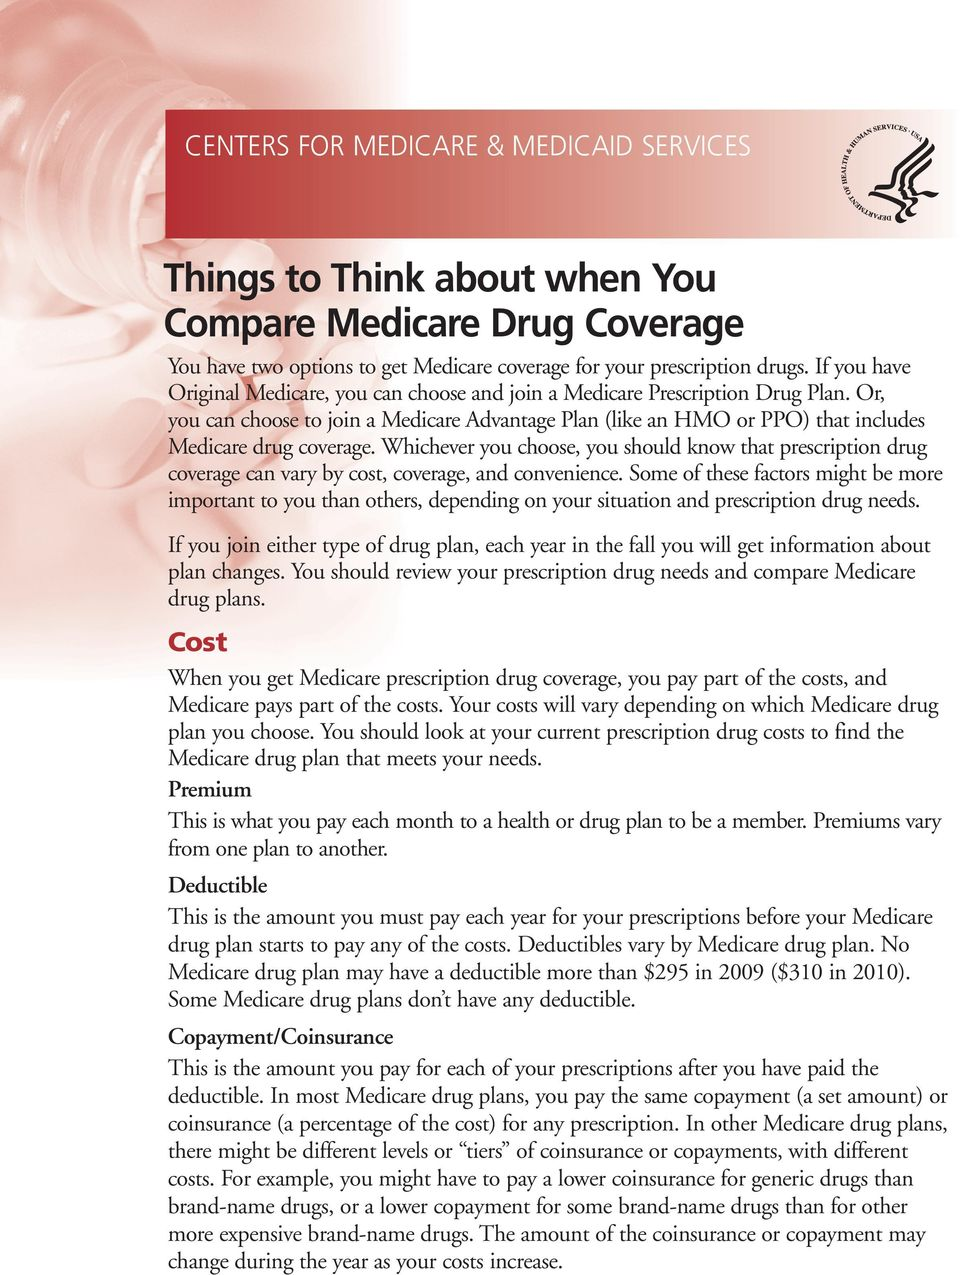 Or, you can choose to join a Medicare Advantage Plan (like an HMO or PPO) that includes Medicare drug coverage.